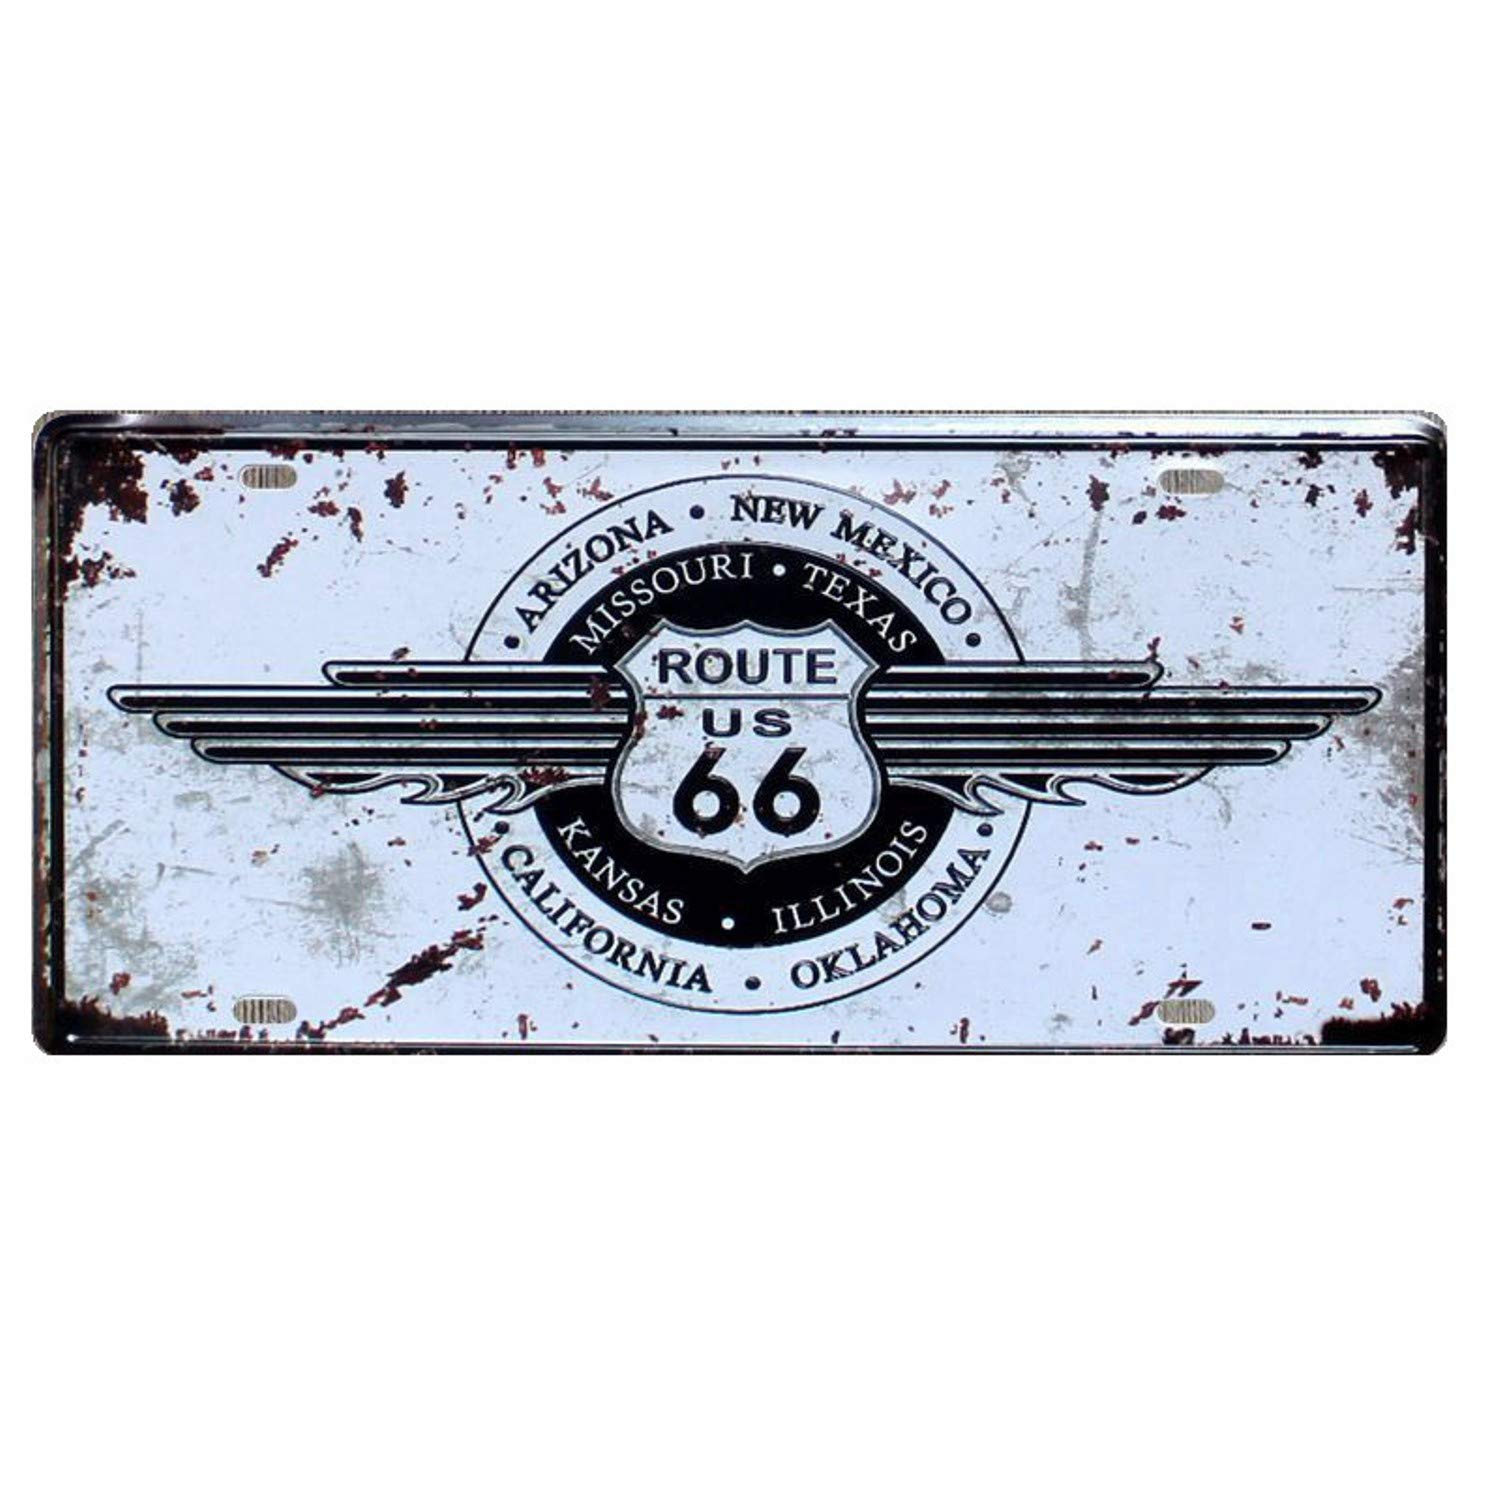 Amazon.com: Chitop USA Vintage Metal Tin Signs Route 66 Car Number License Plate Plaque Poster - Bar Club Wall Garage Home Decoration (15x30cm) (14): Home & ...